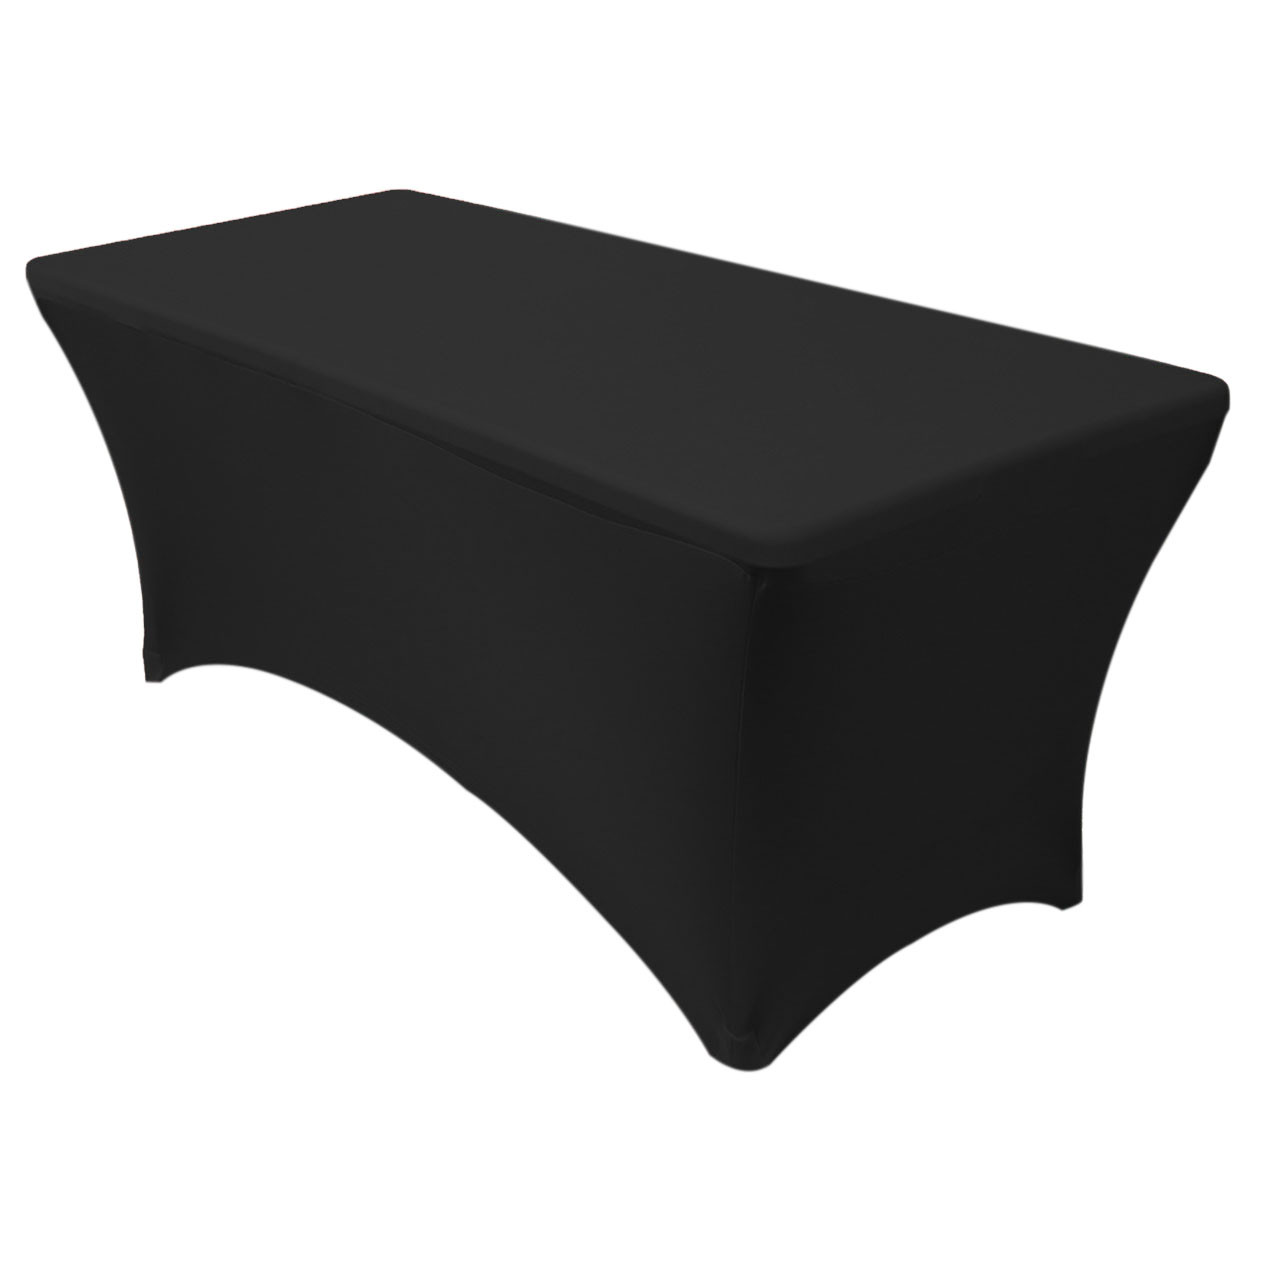 225 & Stretch Spandex 8 ft Rectangular Table Cover Black